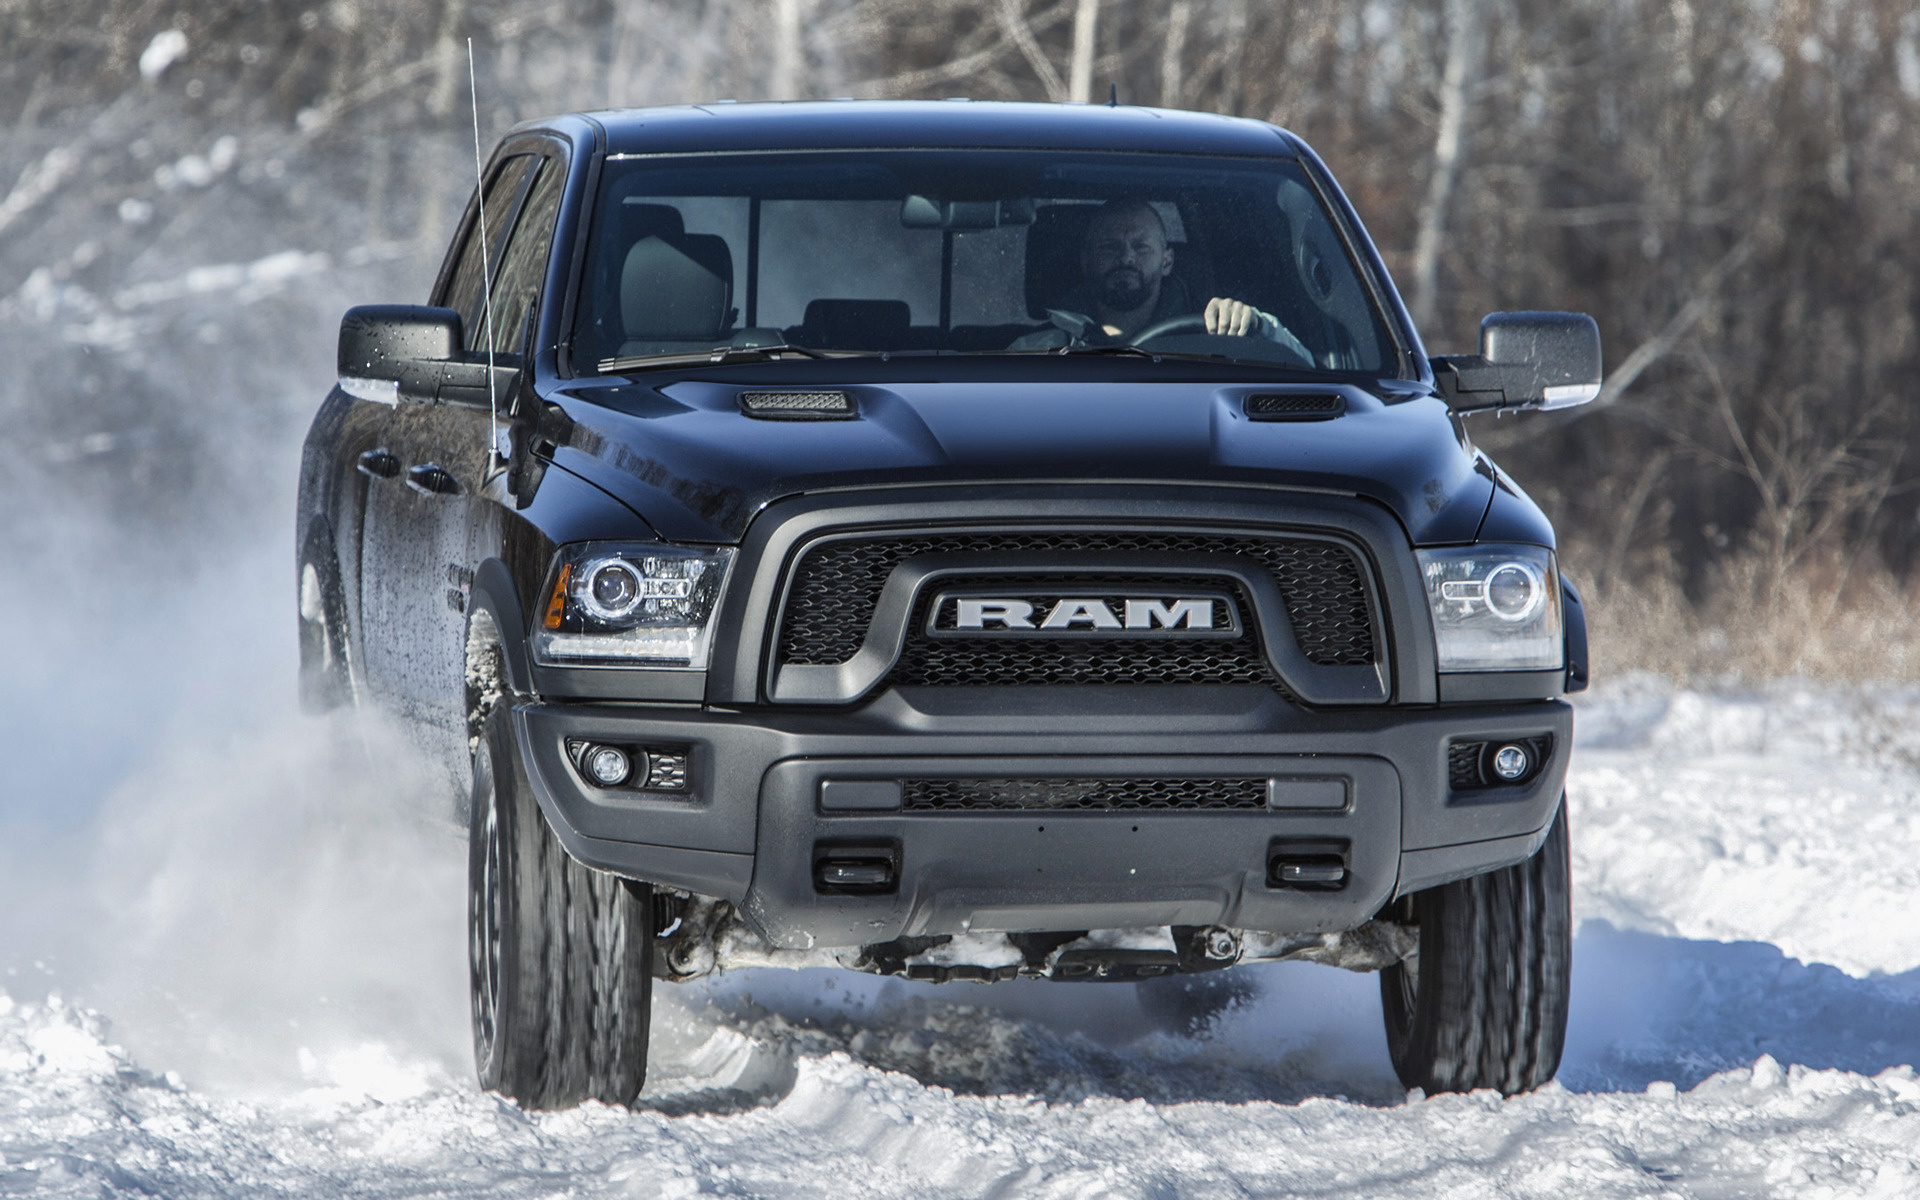 2017 Ram 1500 Rebel Black Crew Cab Wallpapers And Hd